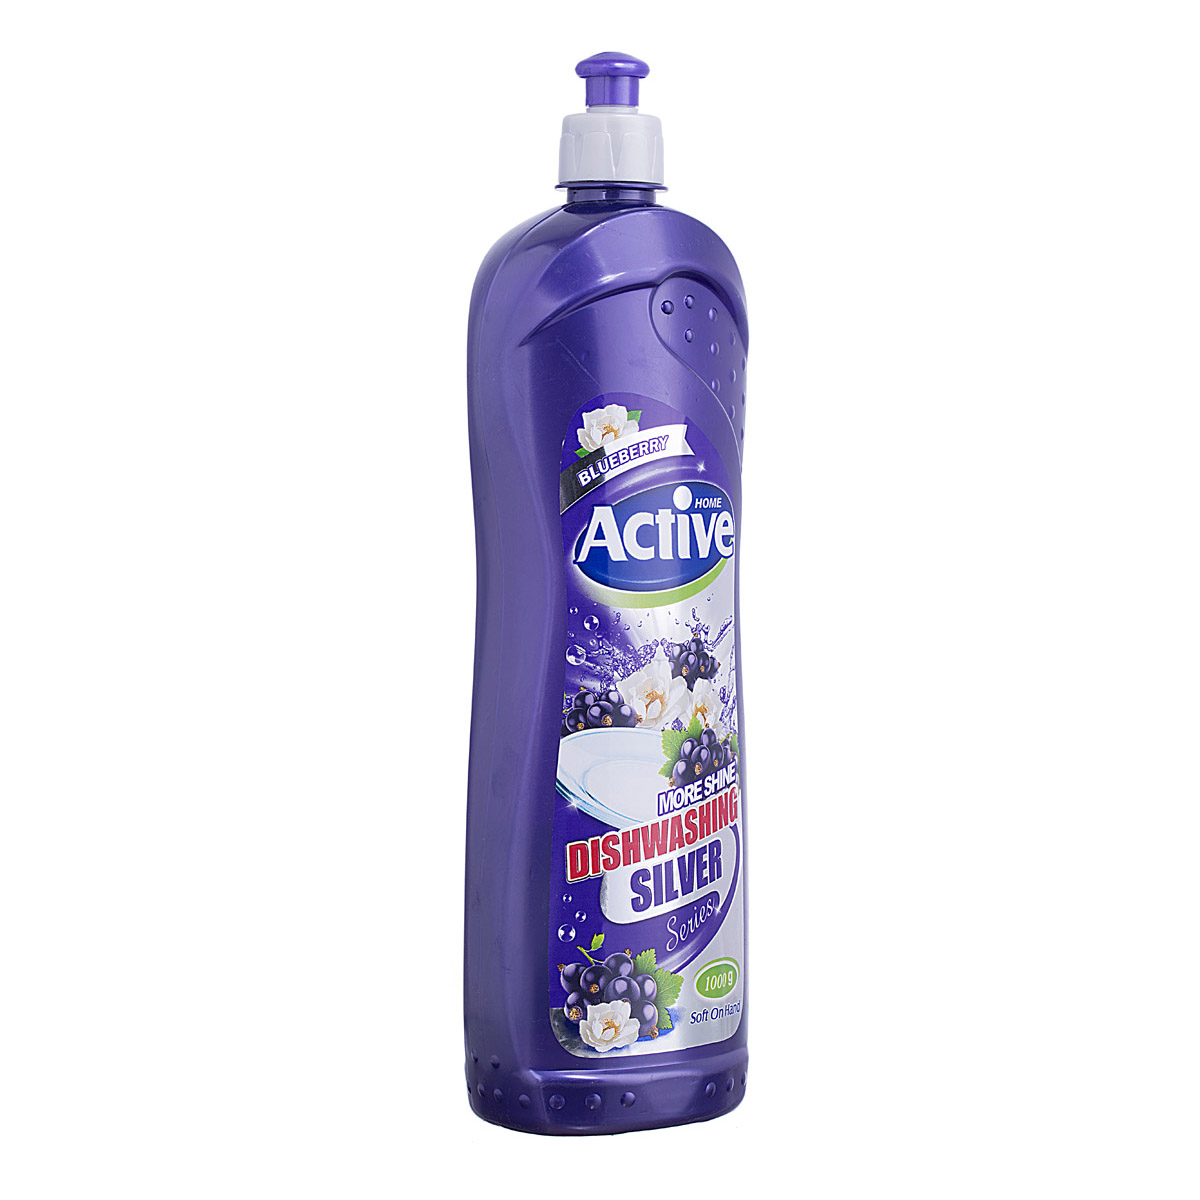 activedishwashingliquid1literpurple